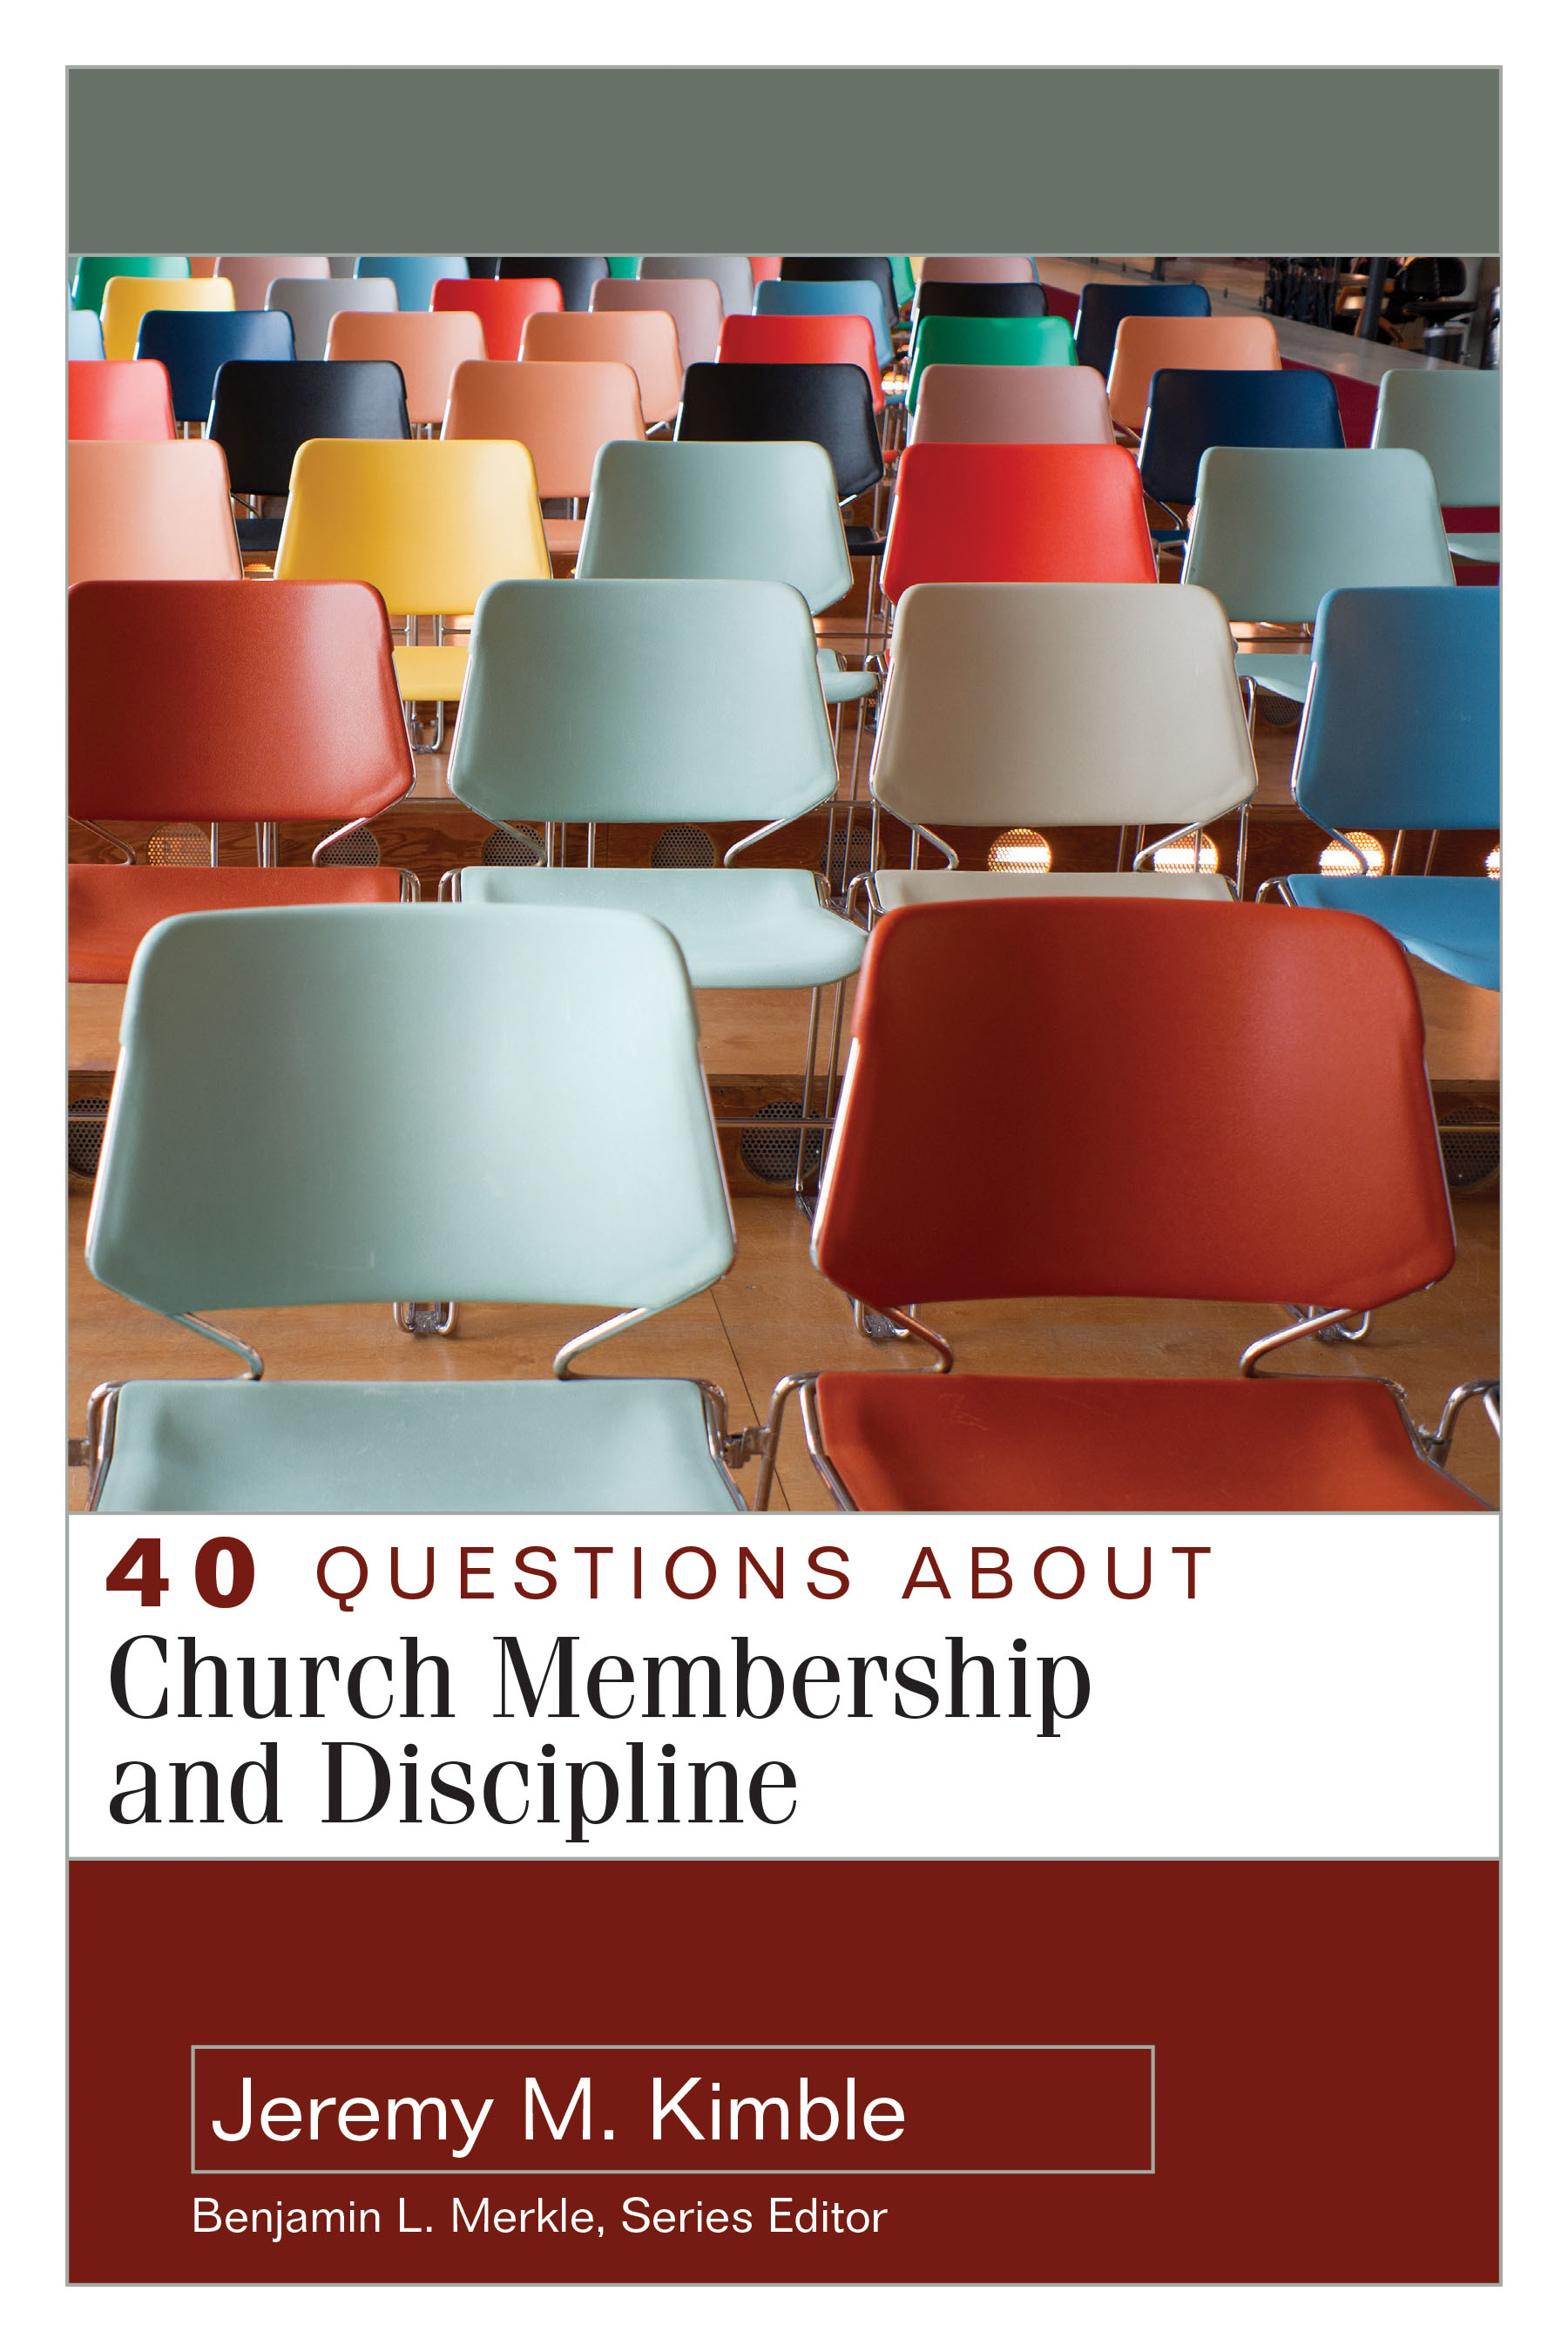 40 Questions About Church Membership and Discipline